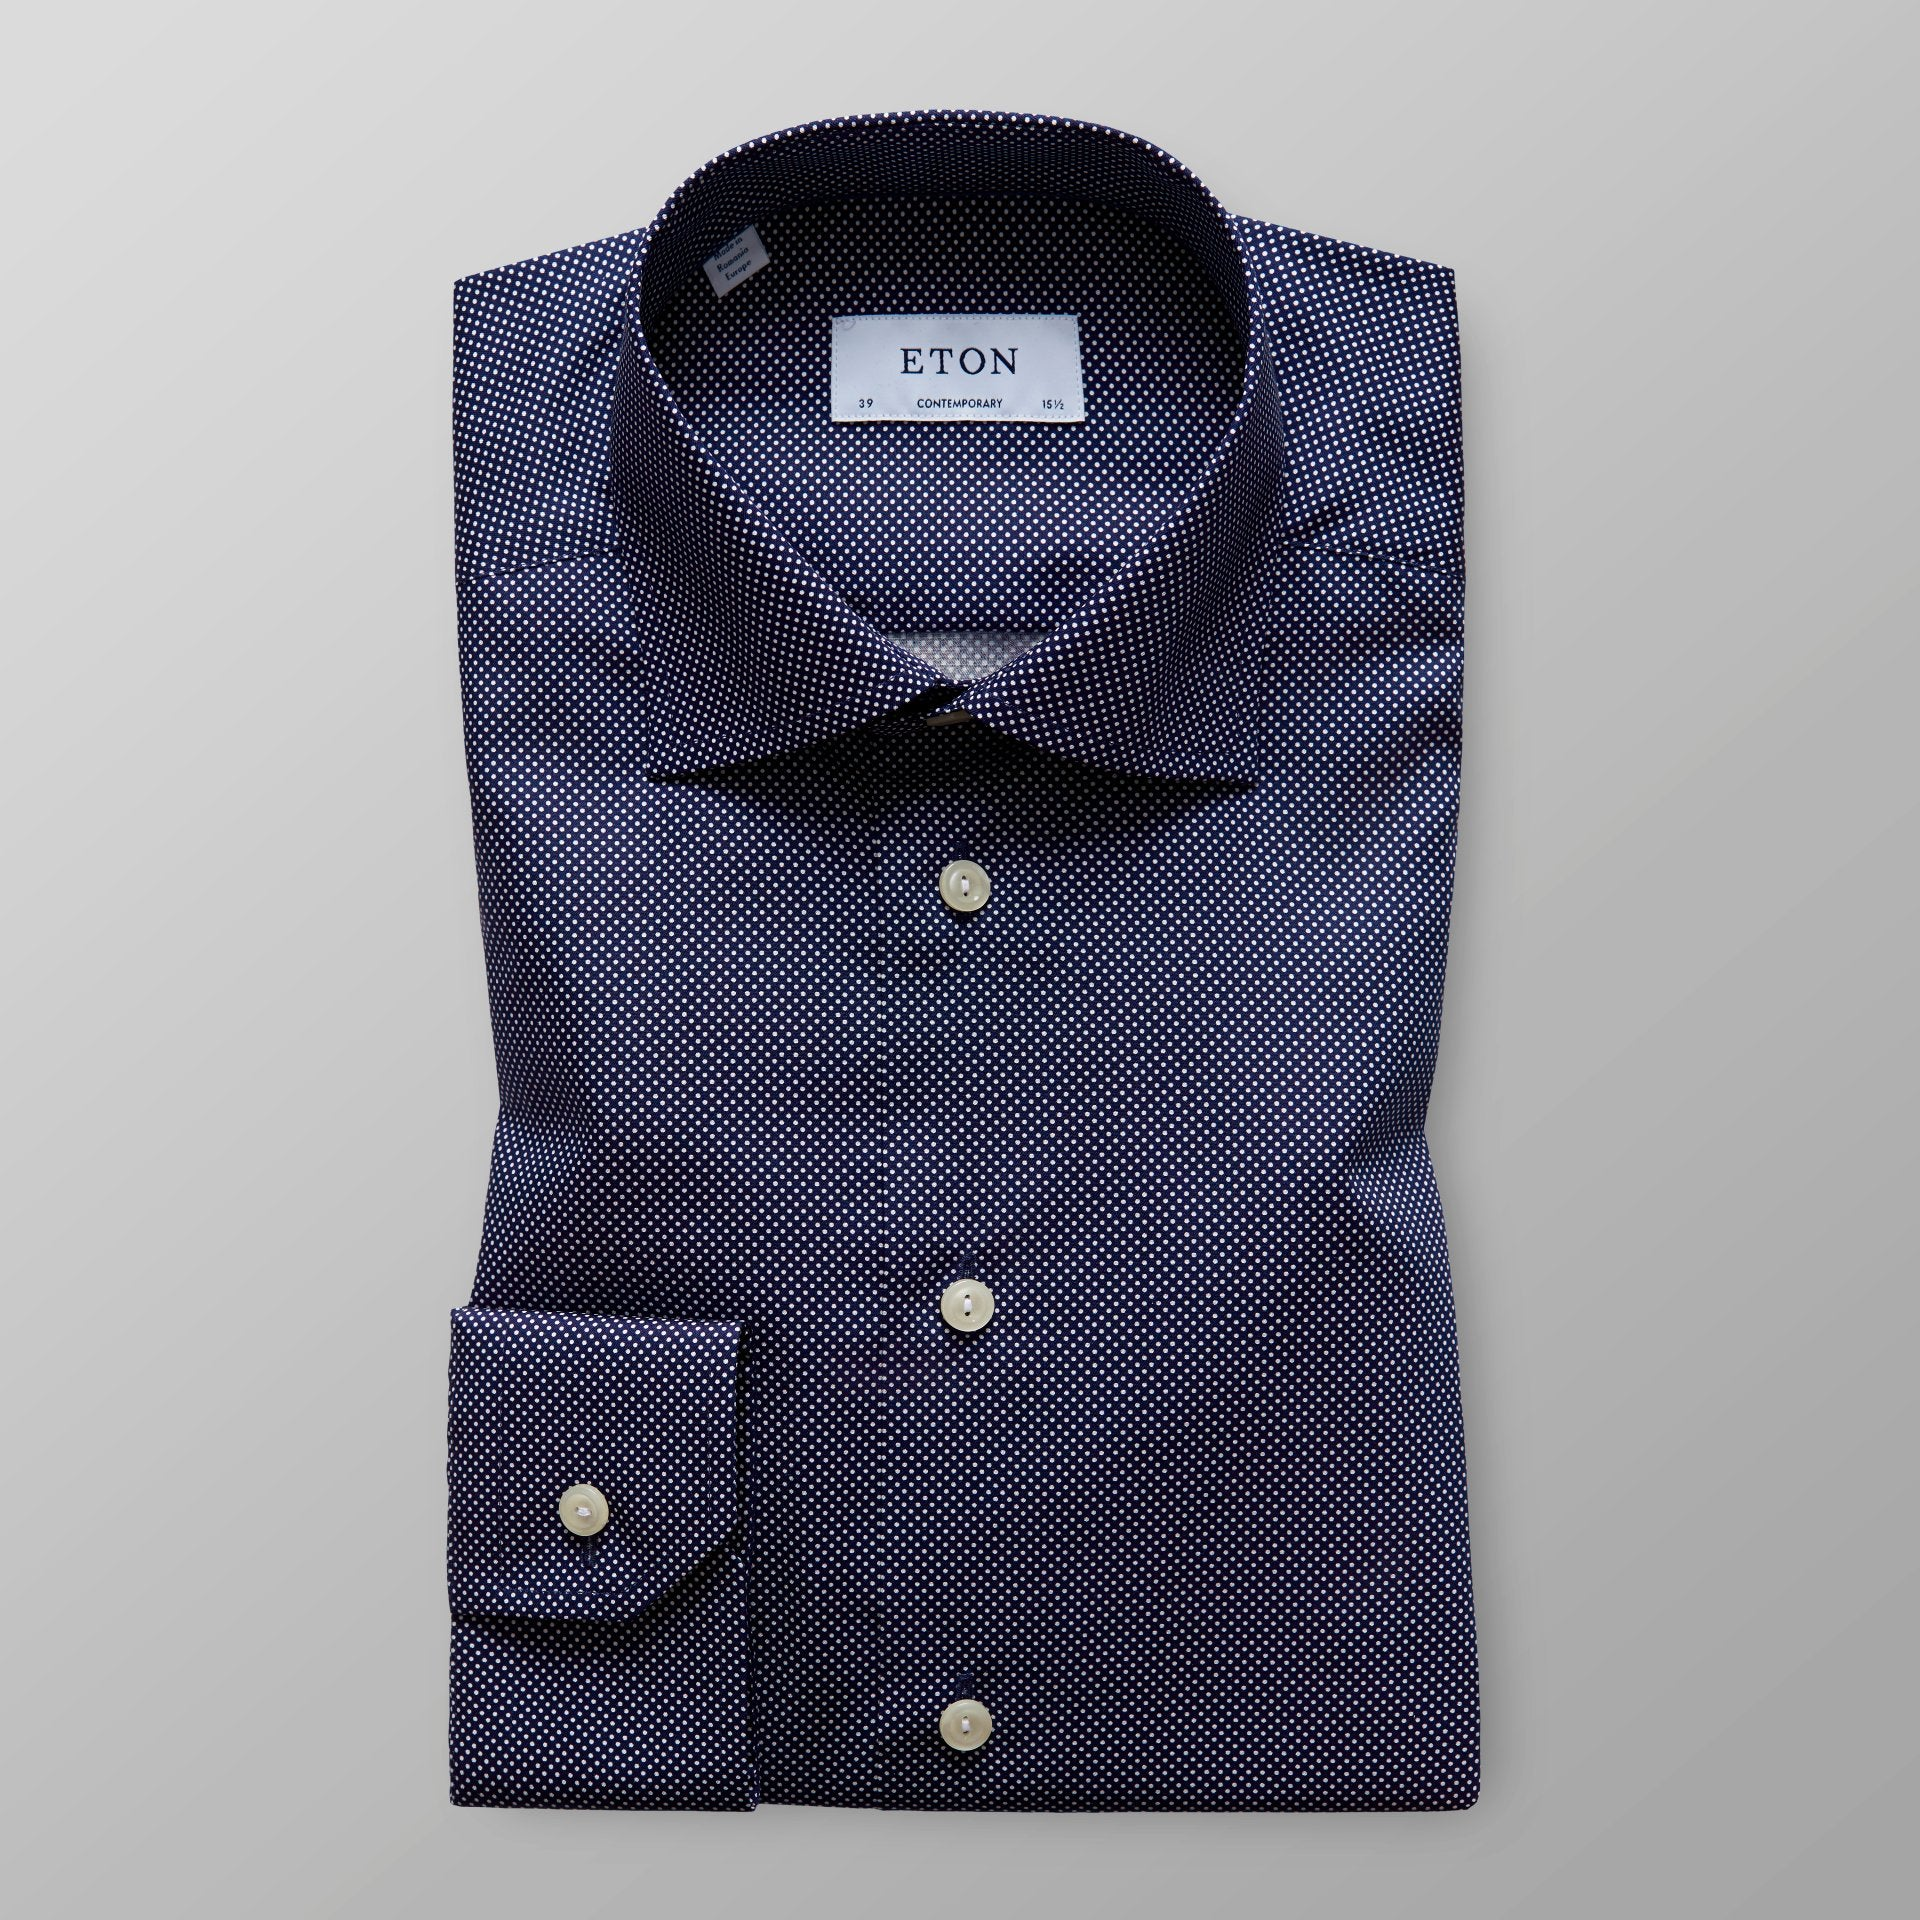 Eton Signature Dots Shirt